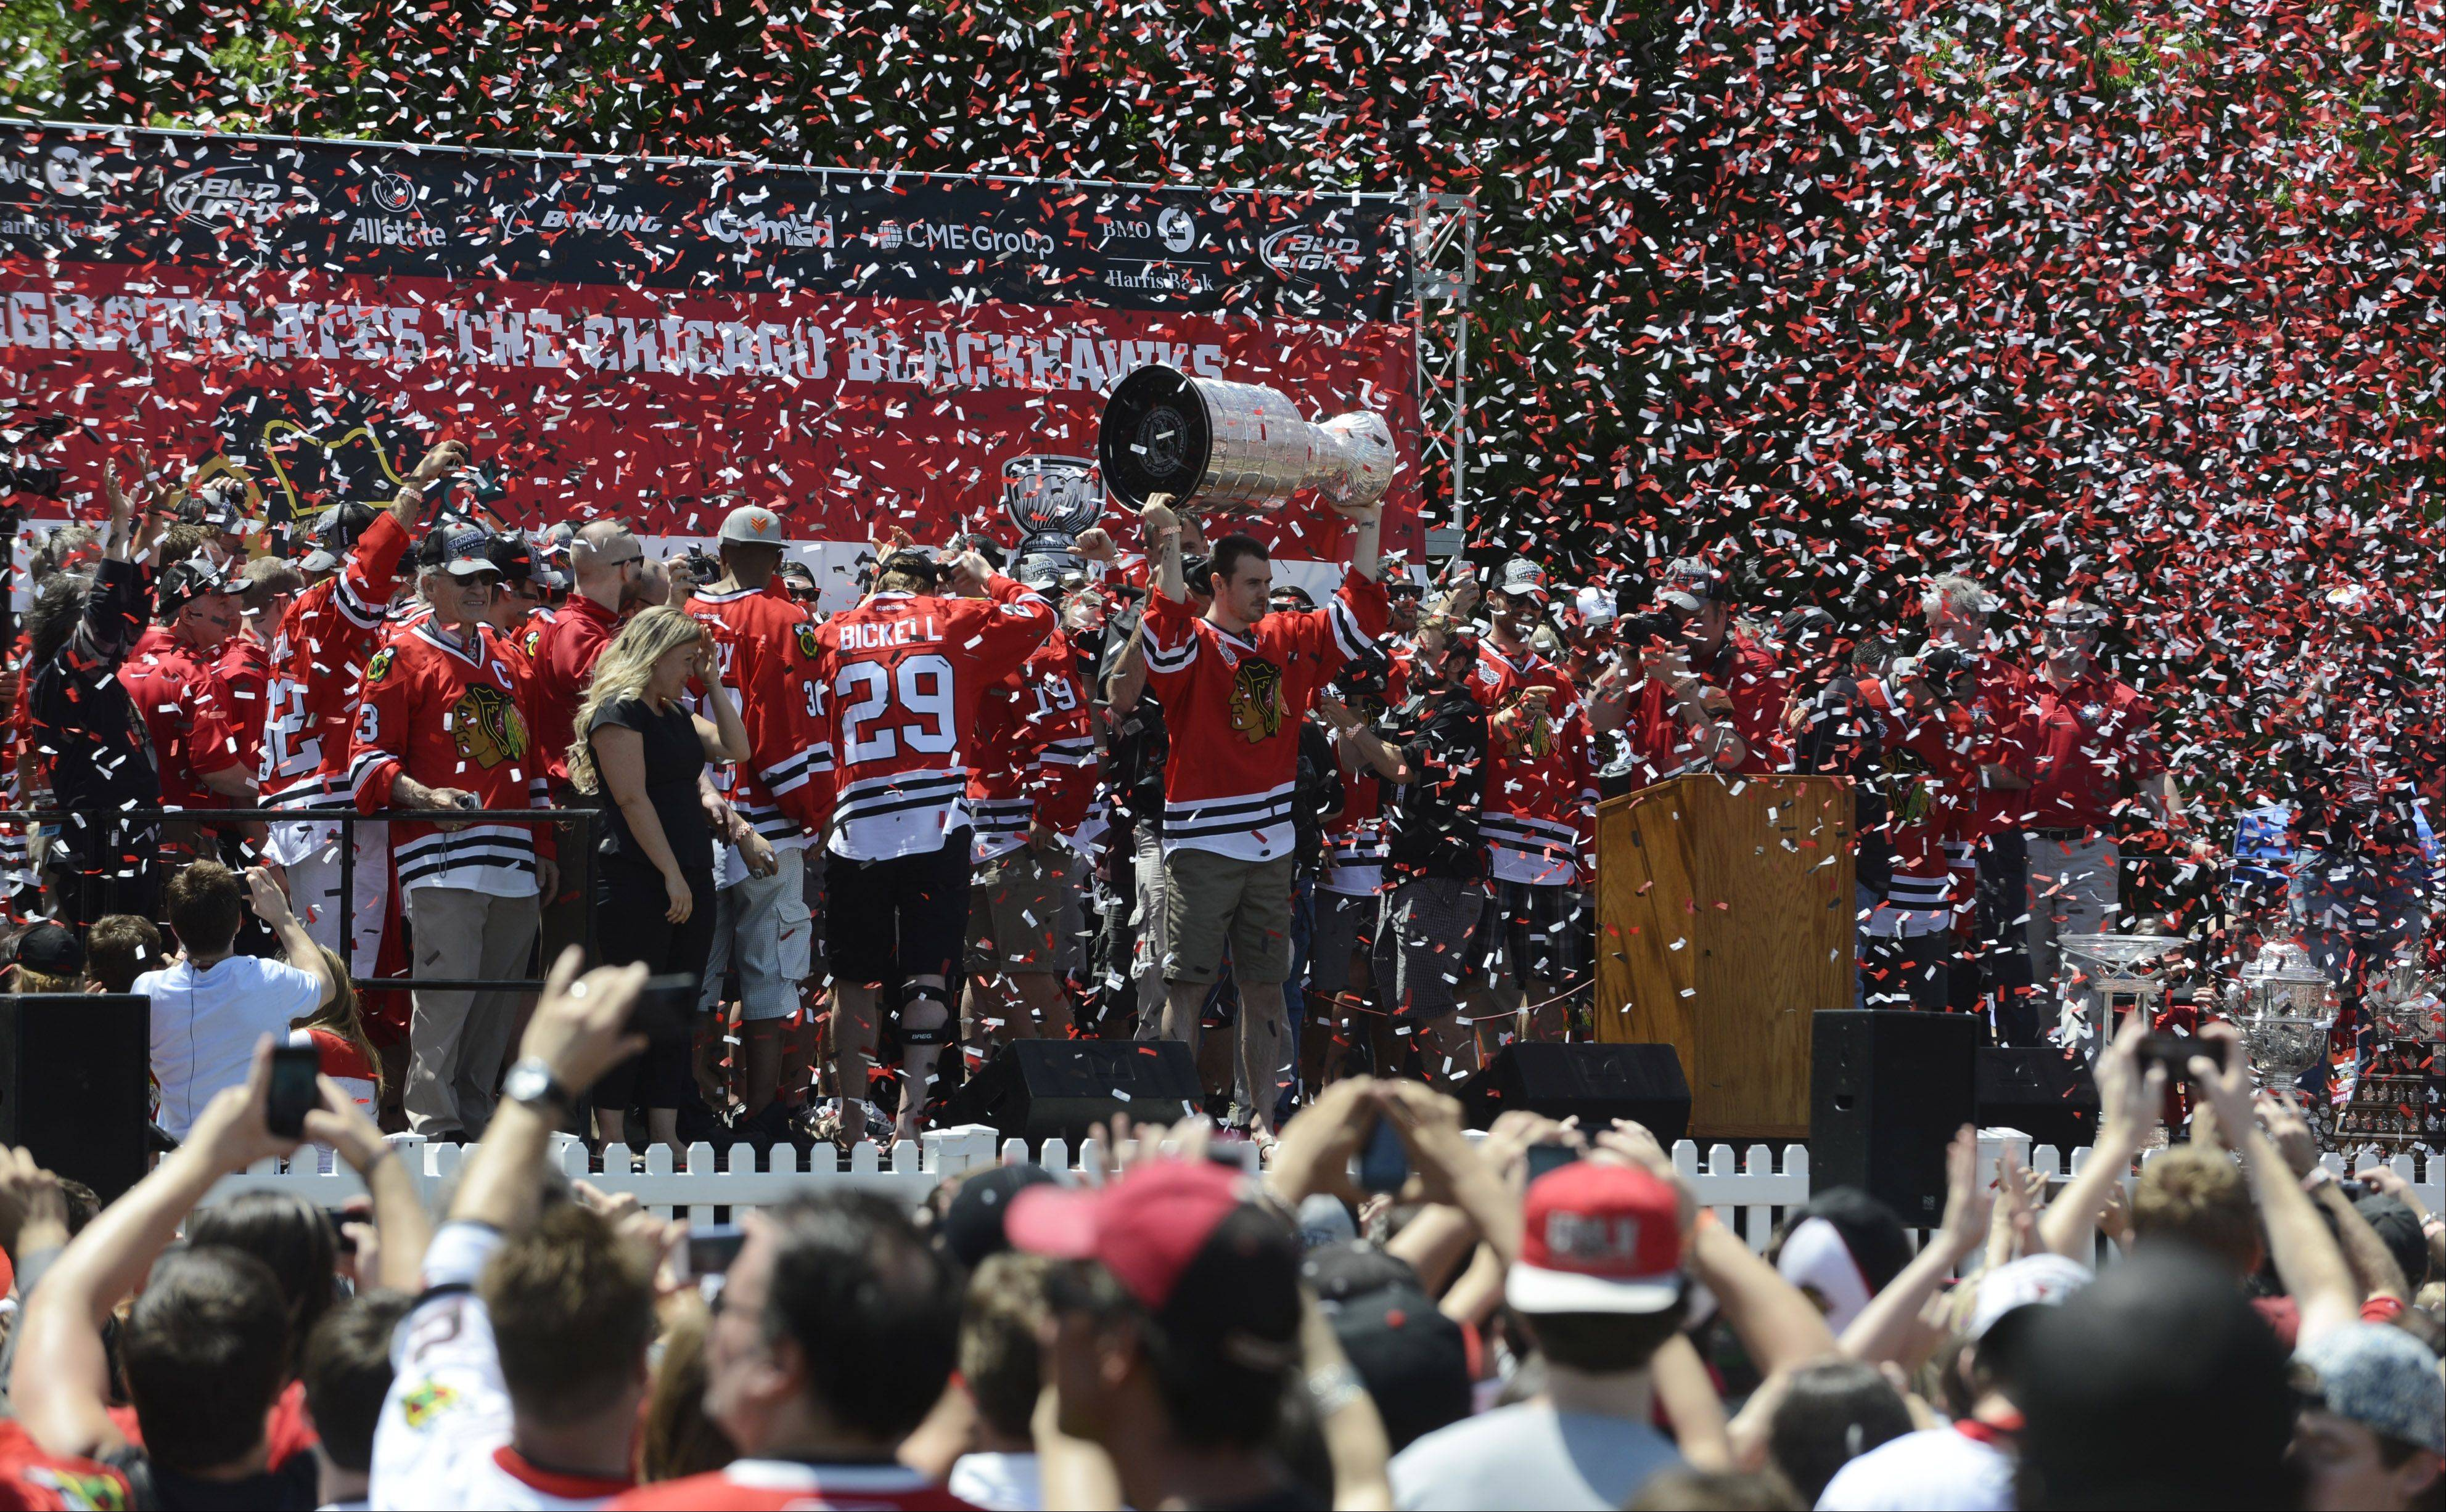 Wherever the Stanley Cup travels, especially at the rally last summer, special things seem to happen.